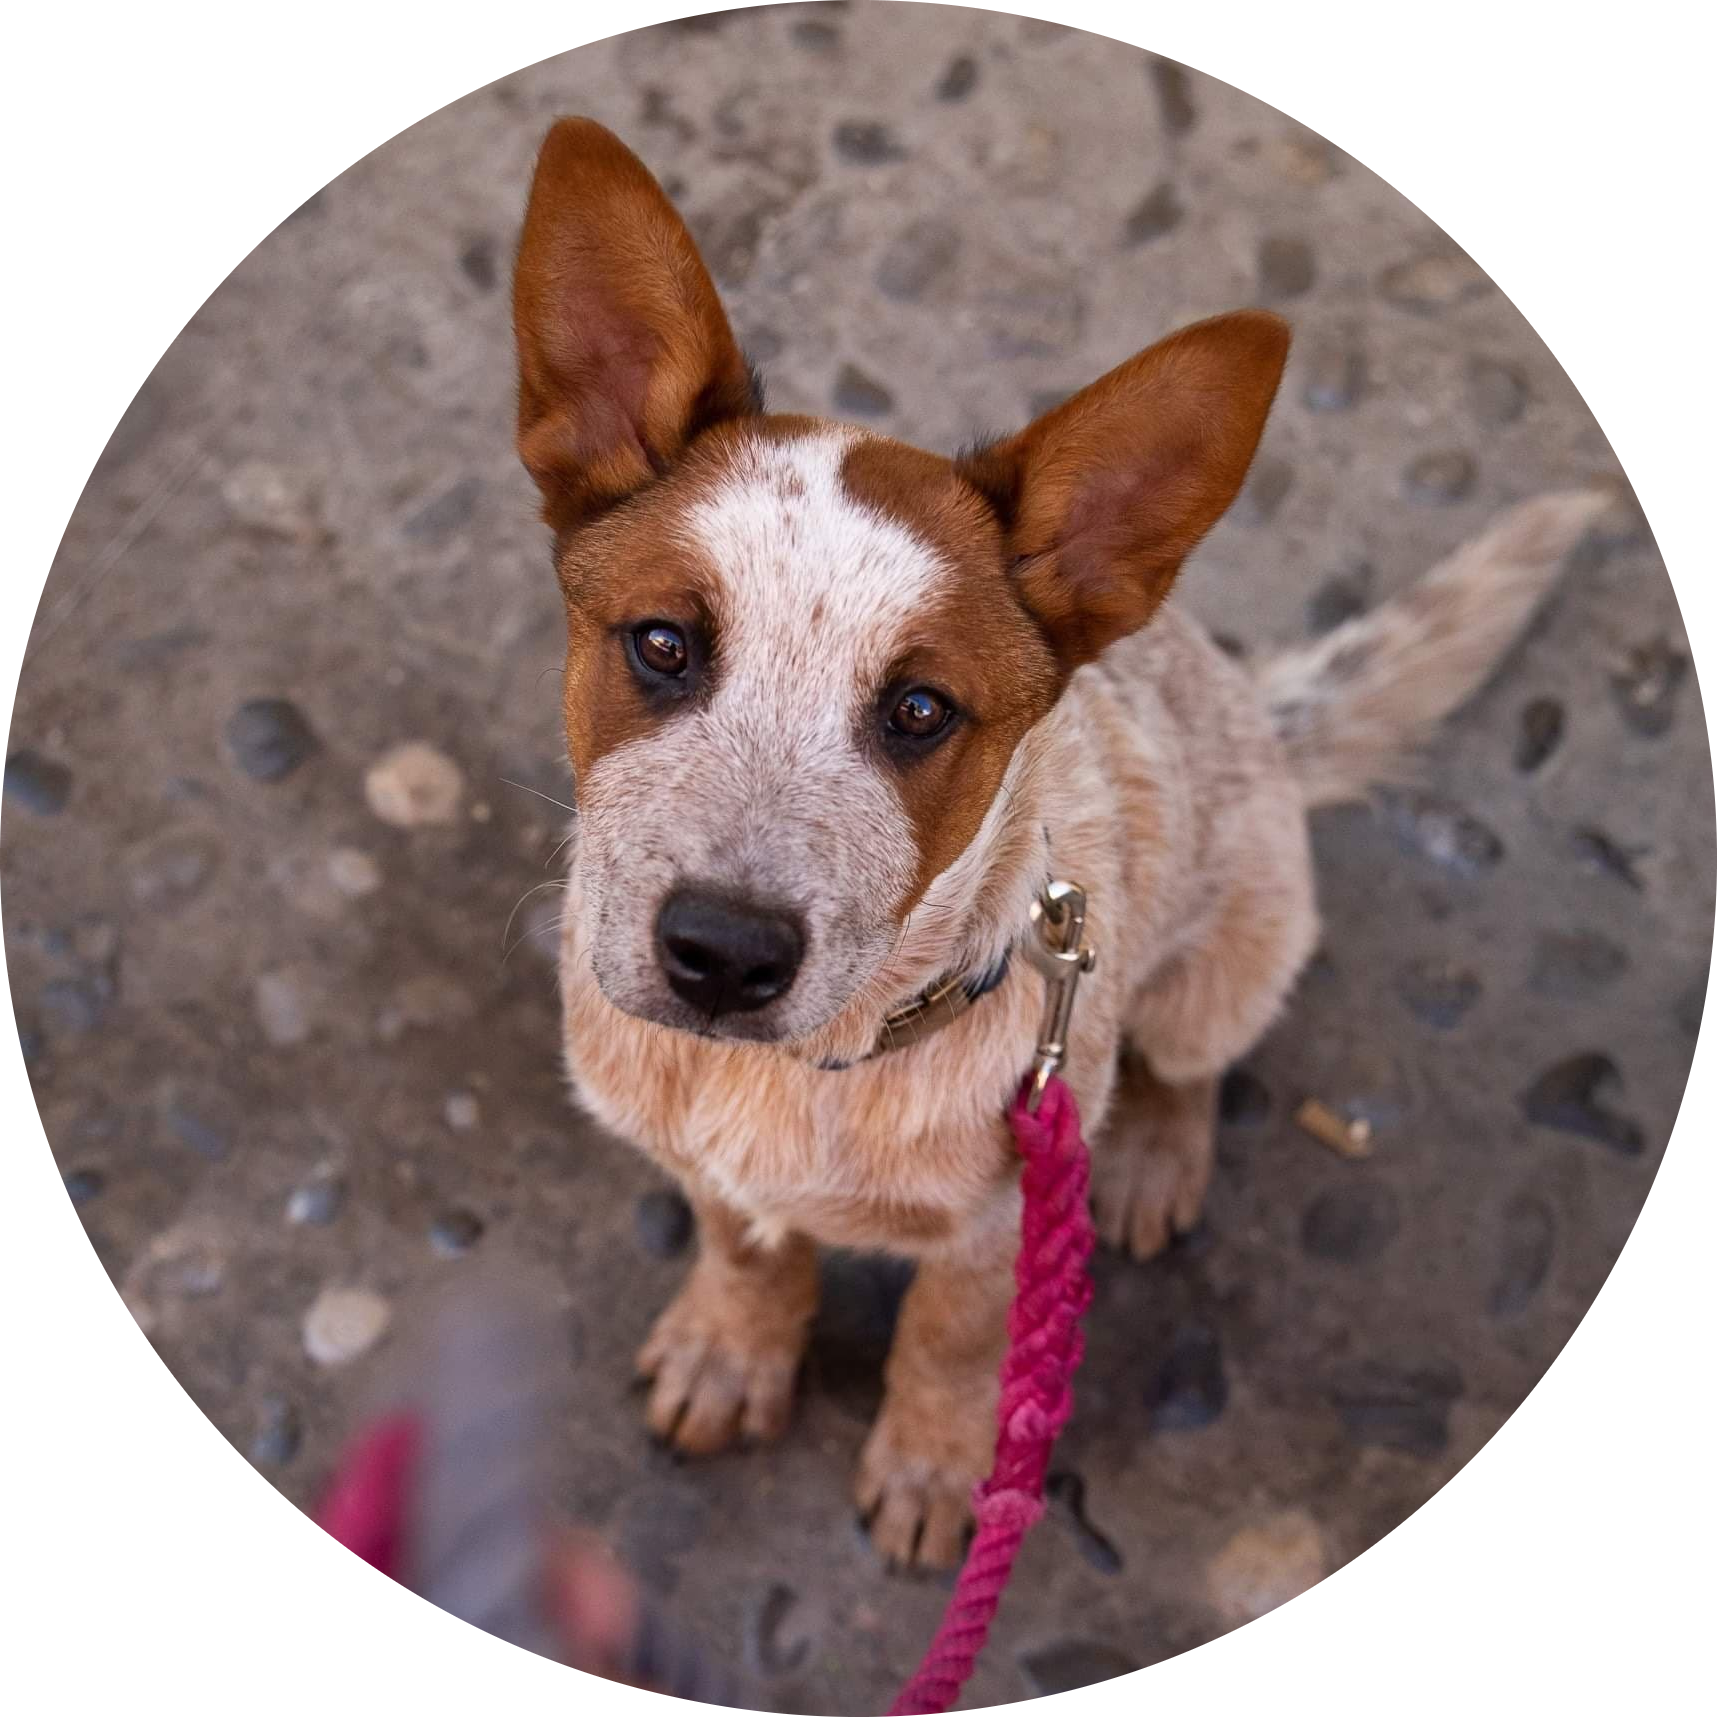 Cafe is a cattle dog